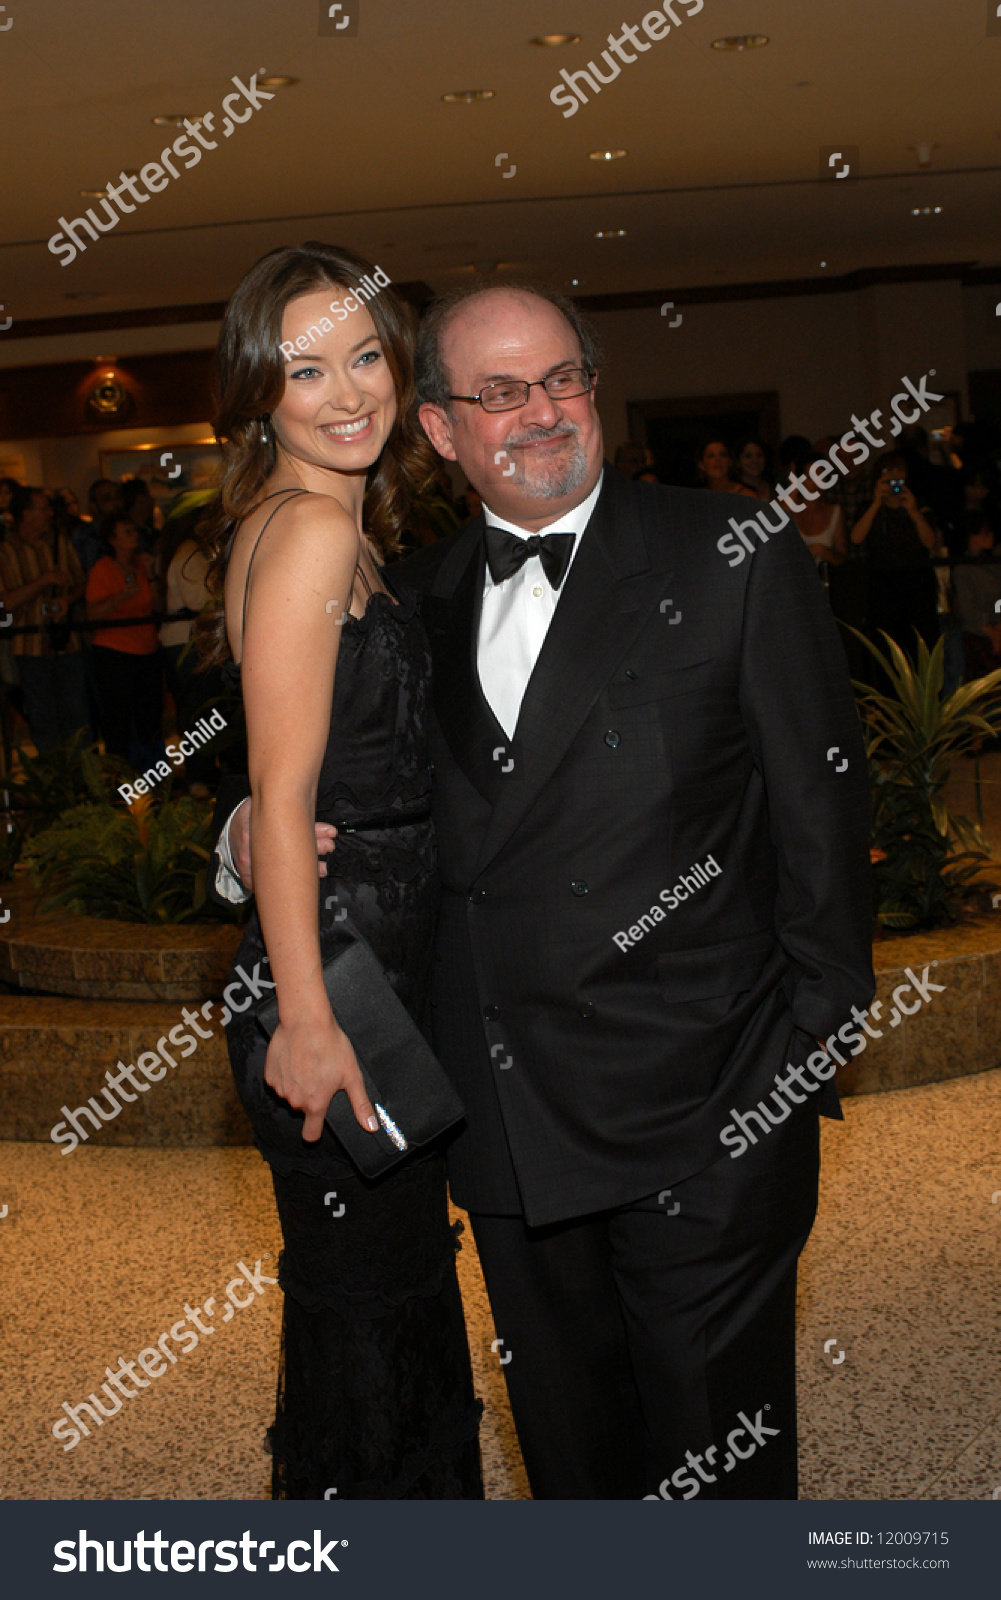 olivia wilde salman rushdie arrive white stock photo  olivia wilde and salman rushdie arrive at the white house correspondents dinner 26